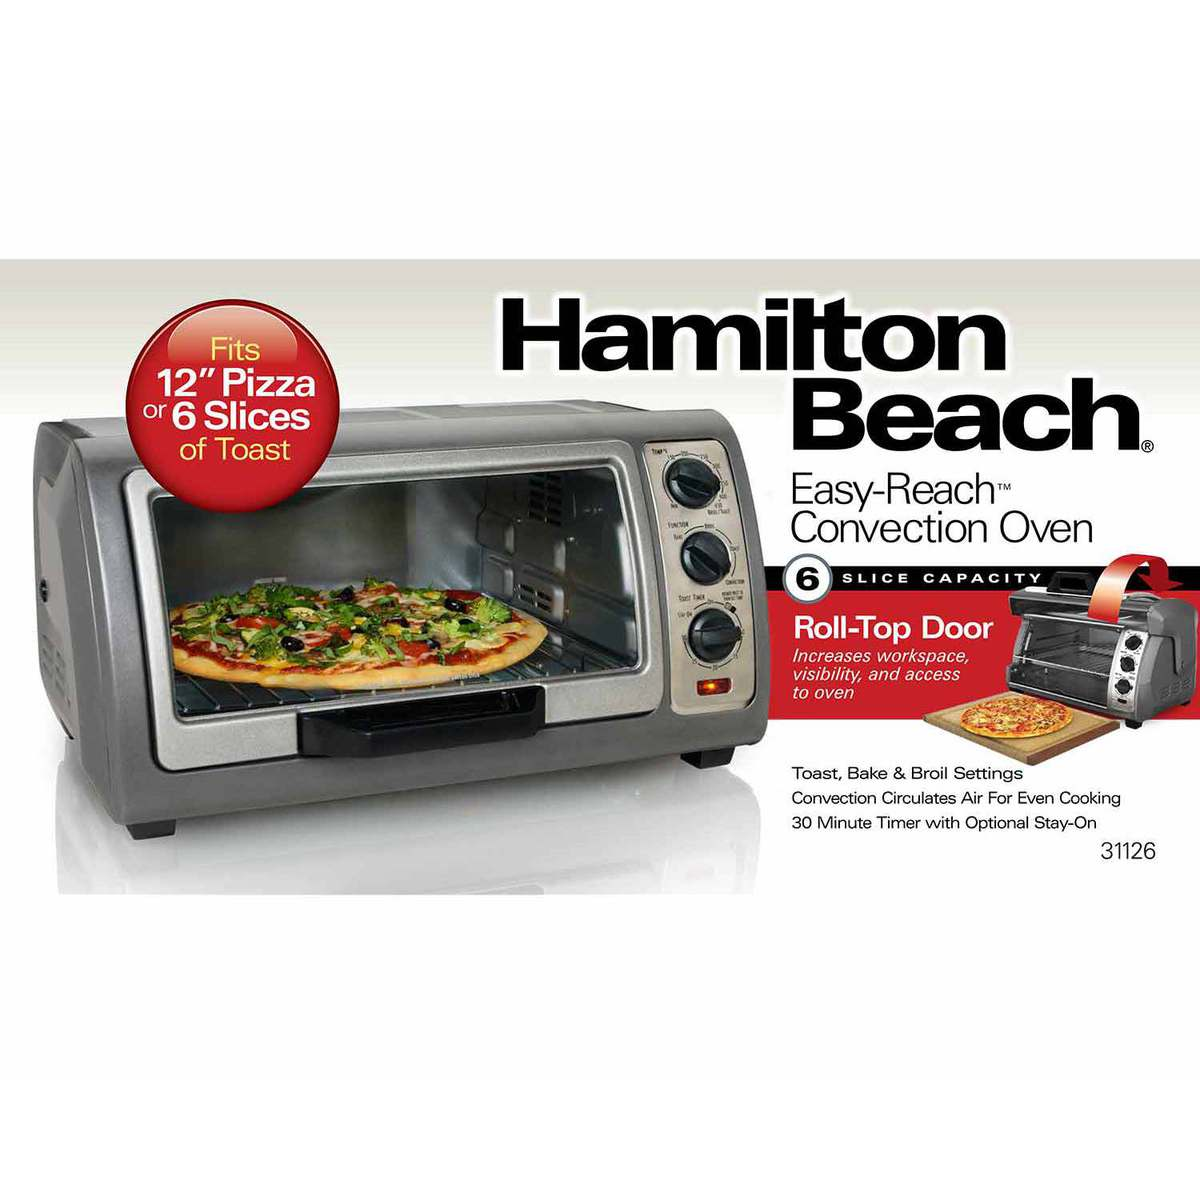 Cozy Slice Easy Toaster Oven Convection Hamilton Beach Easy Convection Oven Counter Convection Toaster Ovens Counter Microwave Toaster Oven Combo houzz-02 Countertop And Toaster Ovens